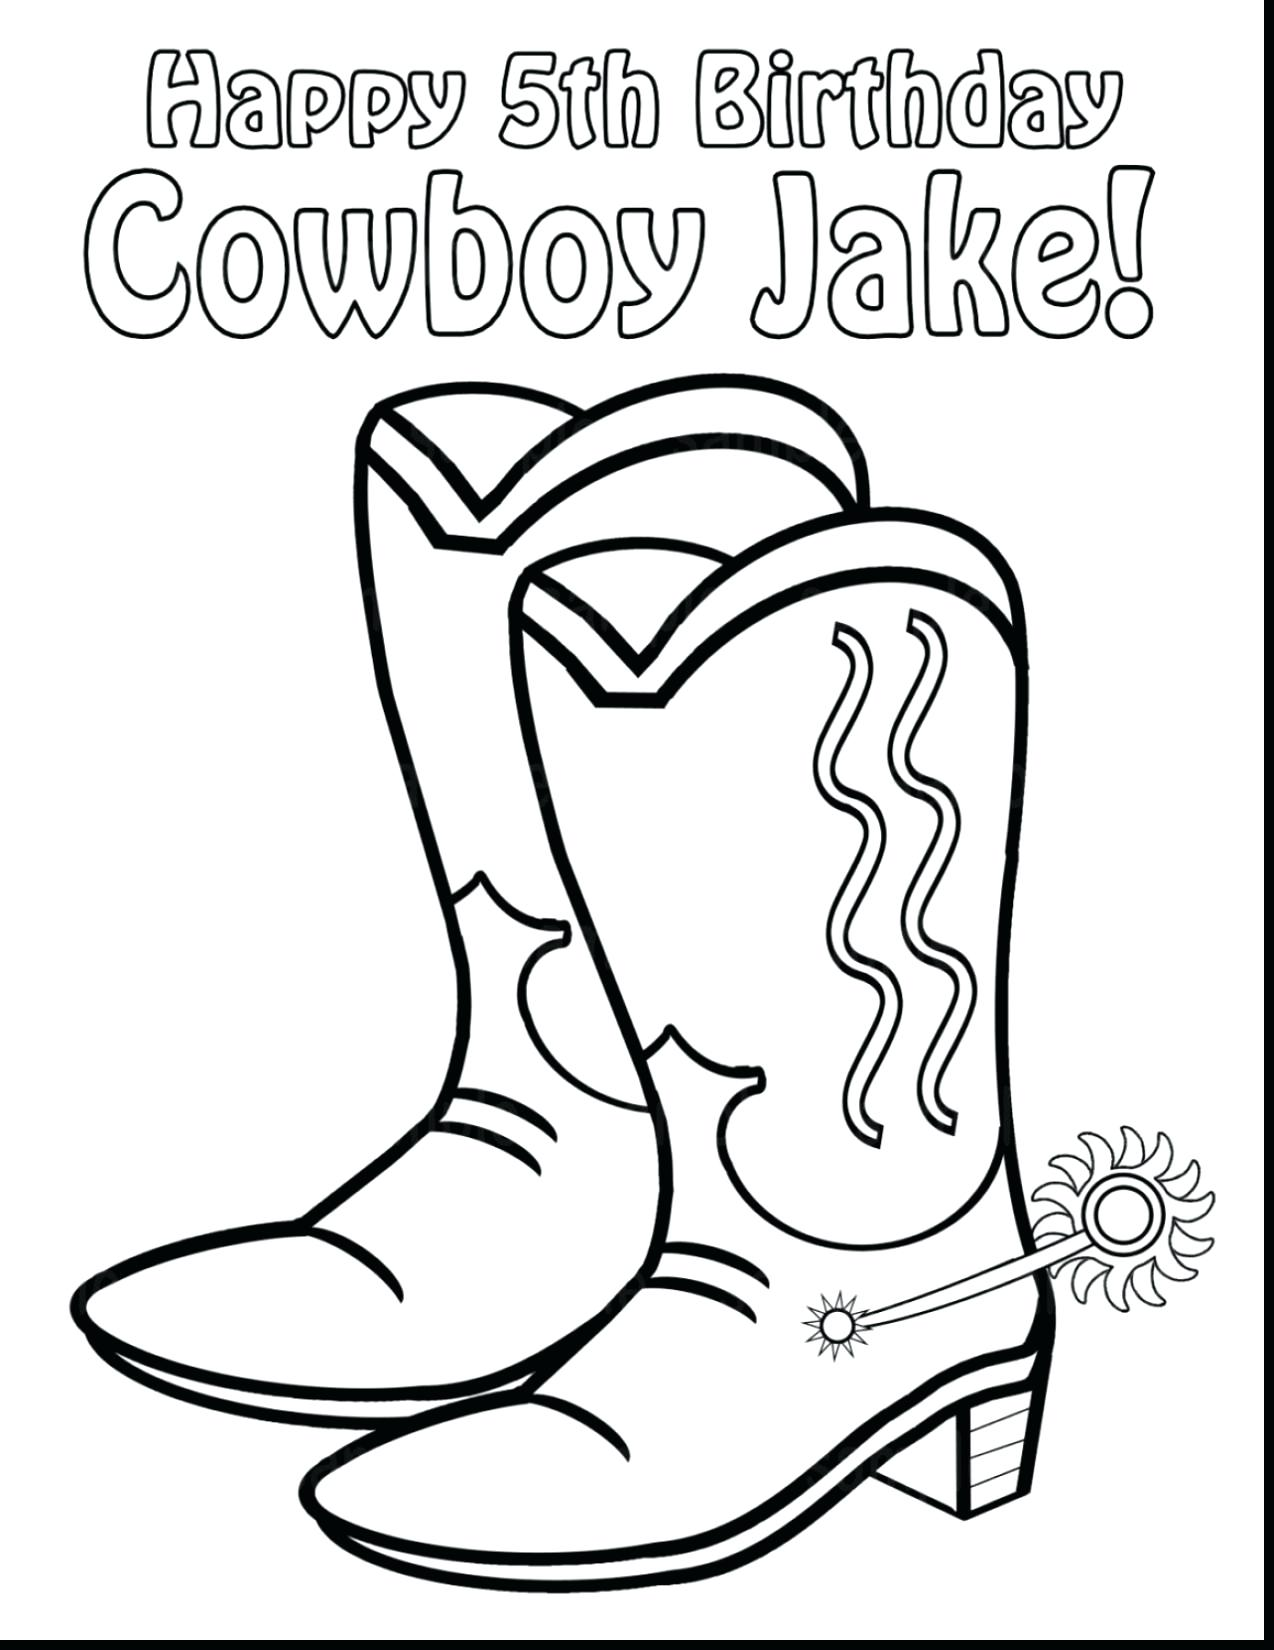 Cowboy Spurs Drawing at GetDrawings.com | Free for personal use ...